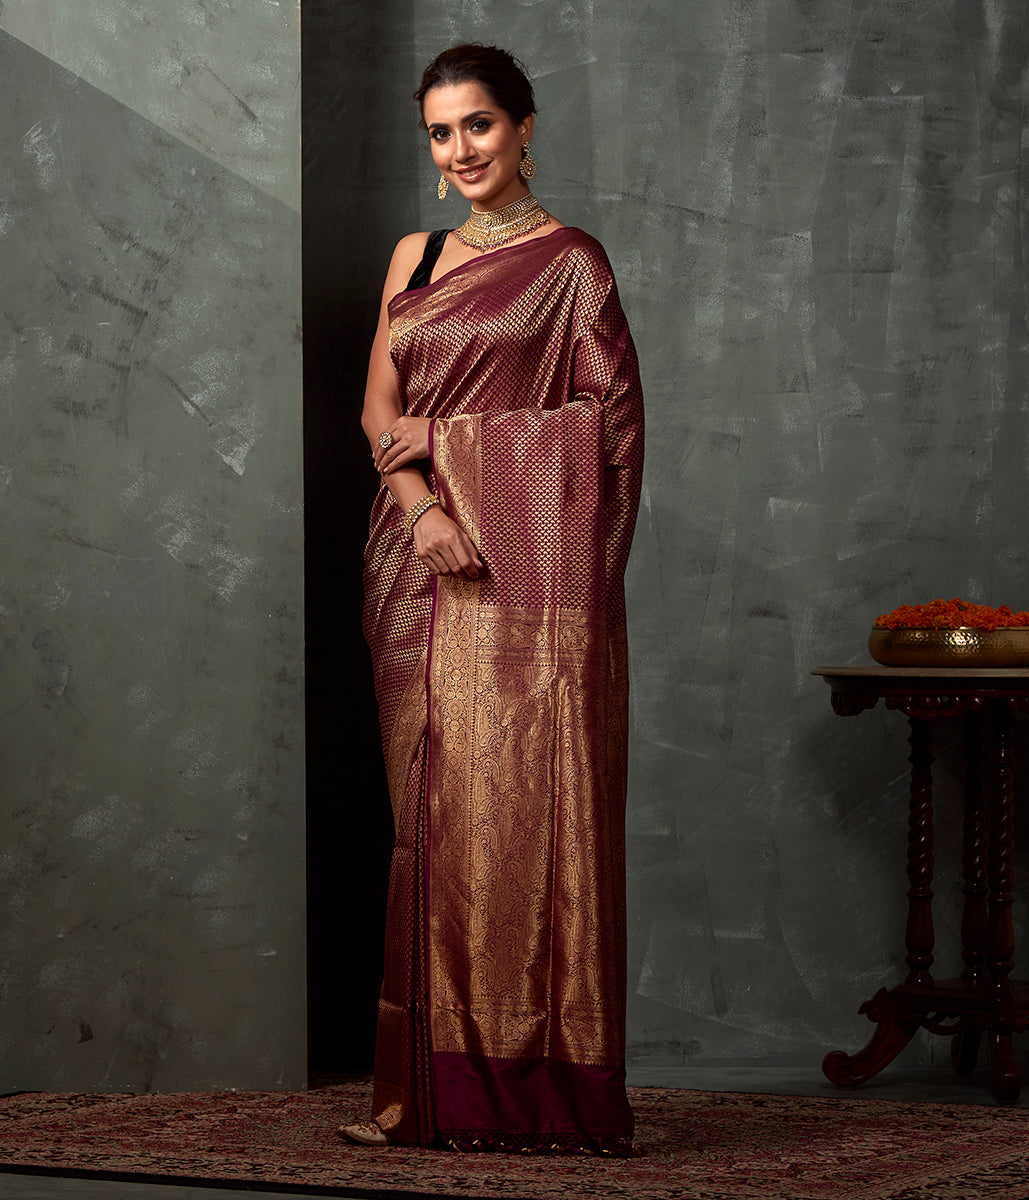 Handwoven Wine Katan Silk saree with Small Paislye Motifs Woven in Zari